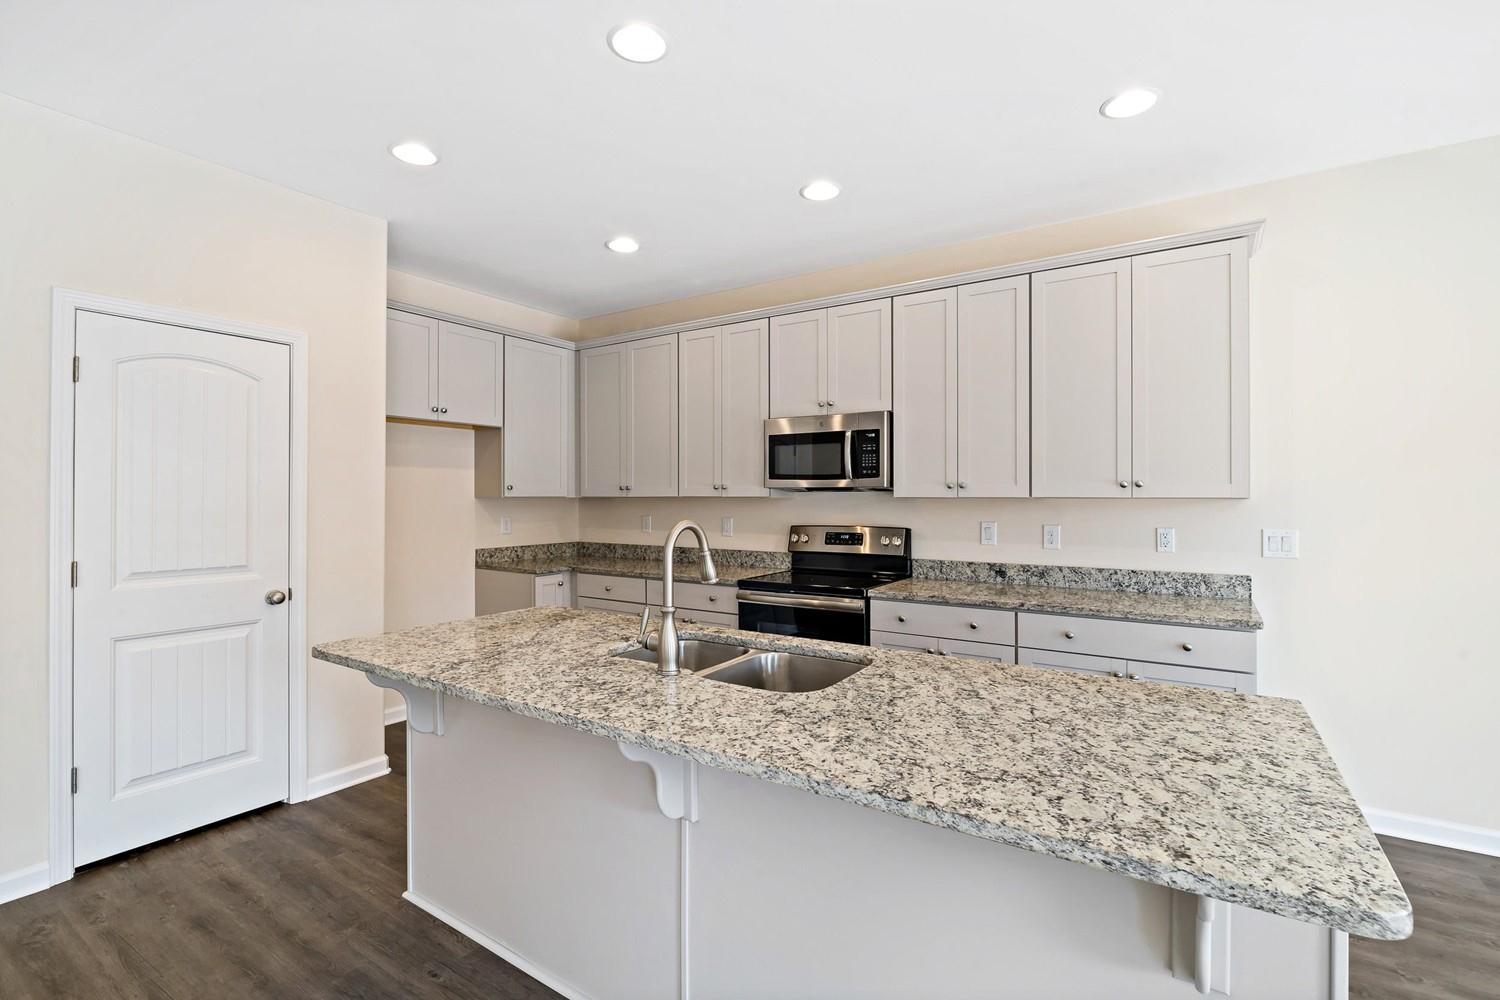 Kitchen featured in The Hatteras By Lamar Smith Homes in Savannah, GA